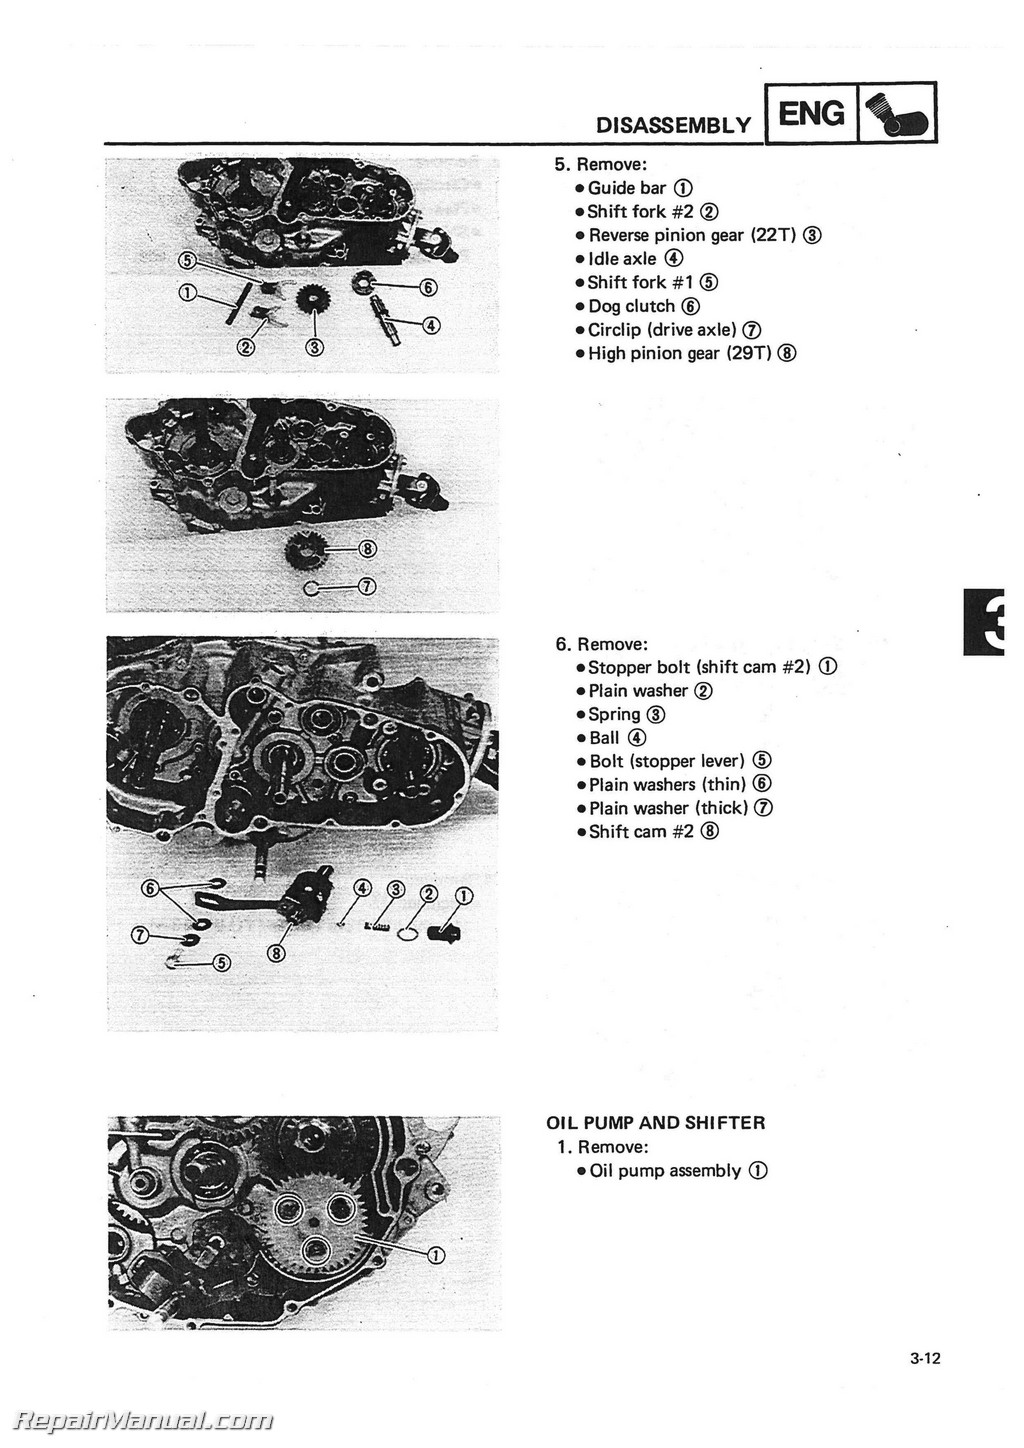 Wiring Diagram For 1986 Yamaha 225 Moto 4 41 Images 1984 Ytm 1988 Yfm225 Service Manual Page 3 1985